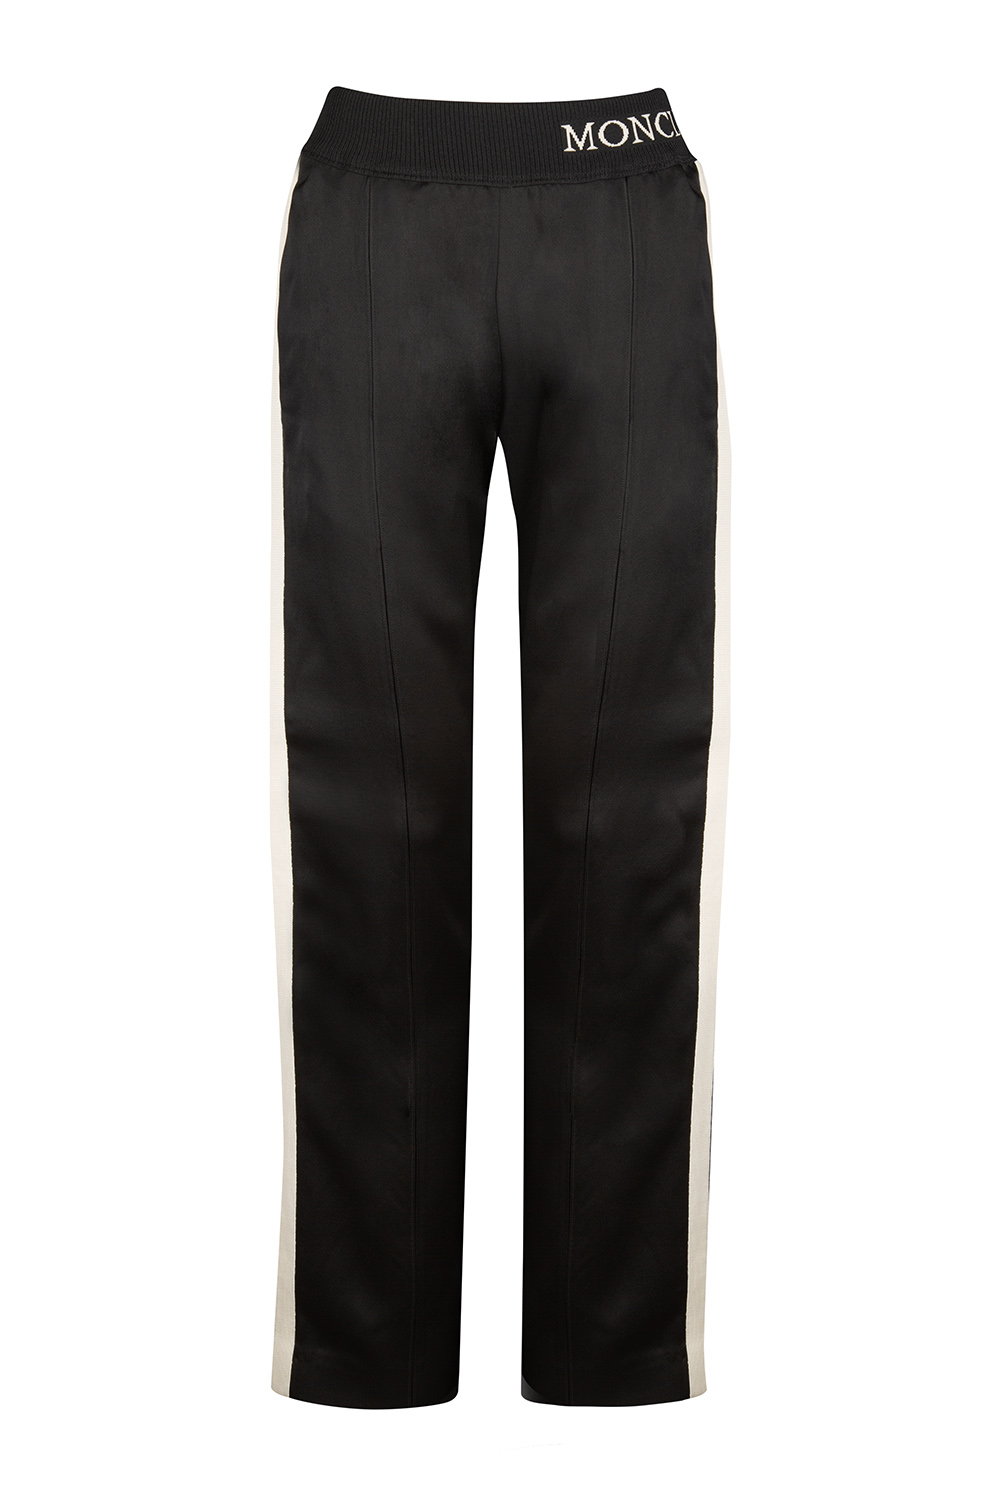 03ba0e36ef56e5 Moncler Women's Side Stripe Track Pants Black | Linea Fashion Linea ...